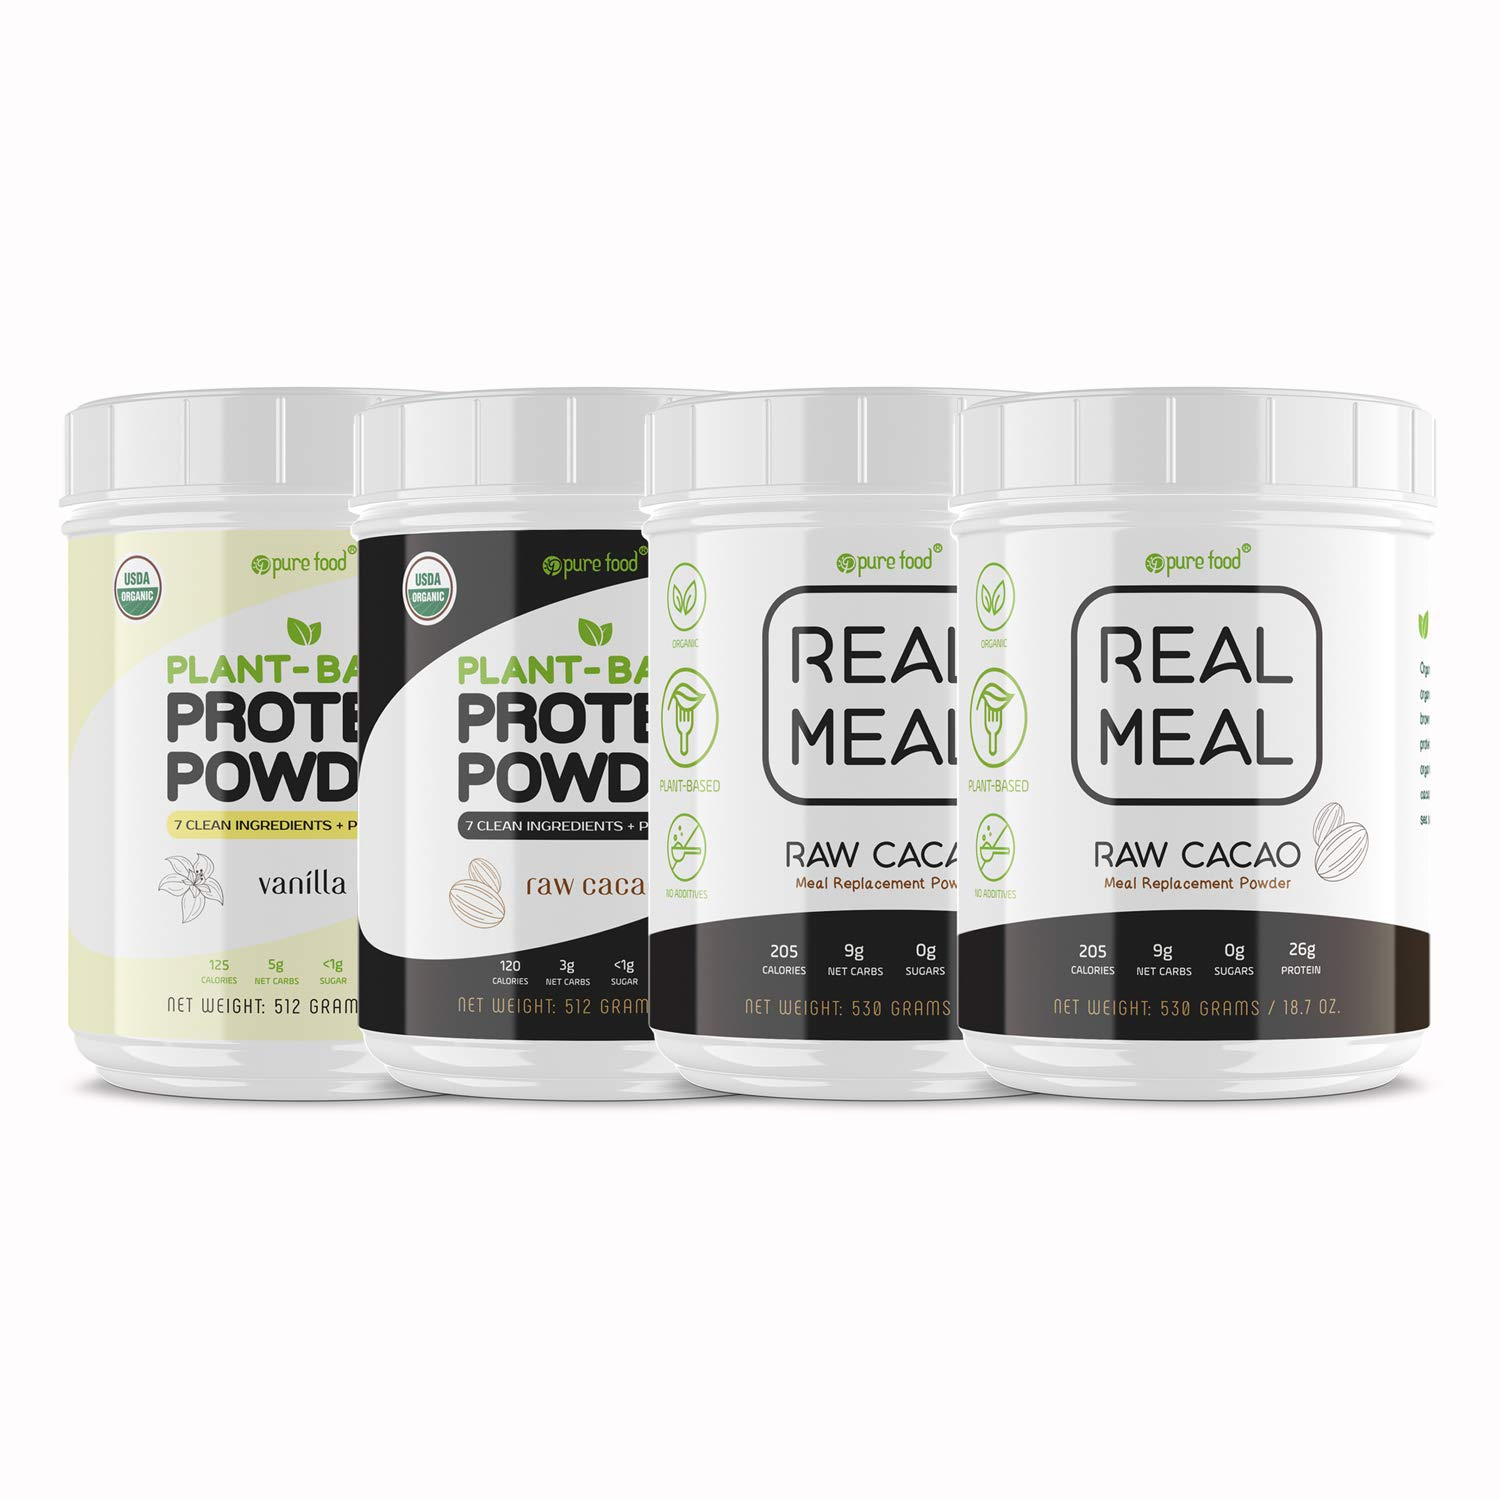 Pure Food Real Meal Replacement Powder + Vanilla & Raw Cacao Protein Powder | Plant-Based,